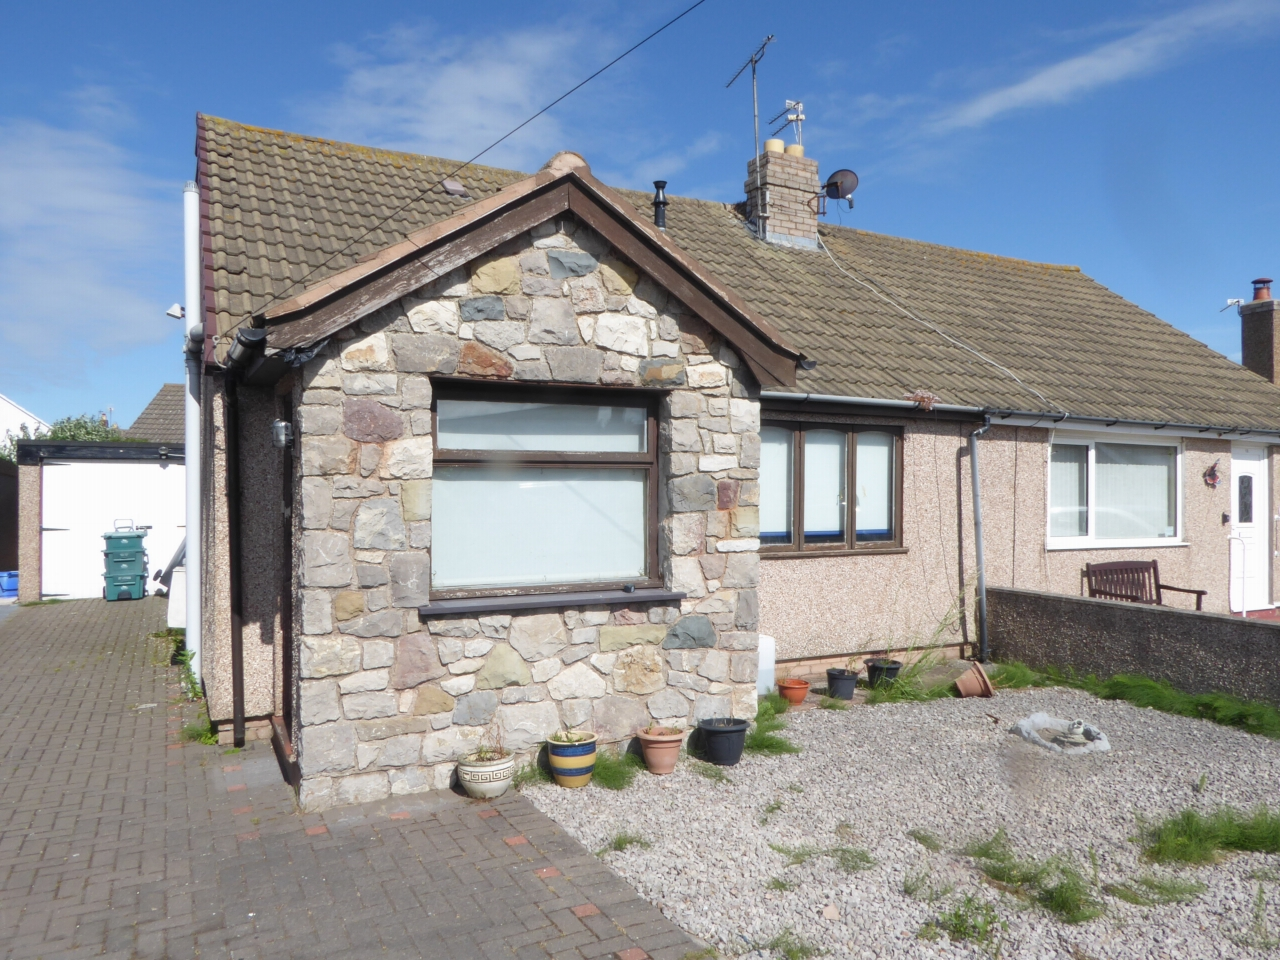 2 bedroom detached bungalow Under Offer in Abergele - Photograph 1